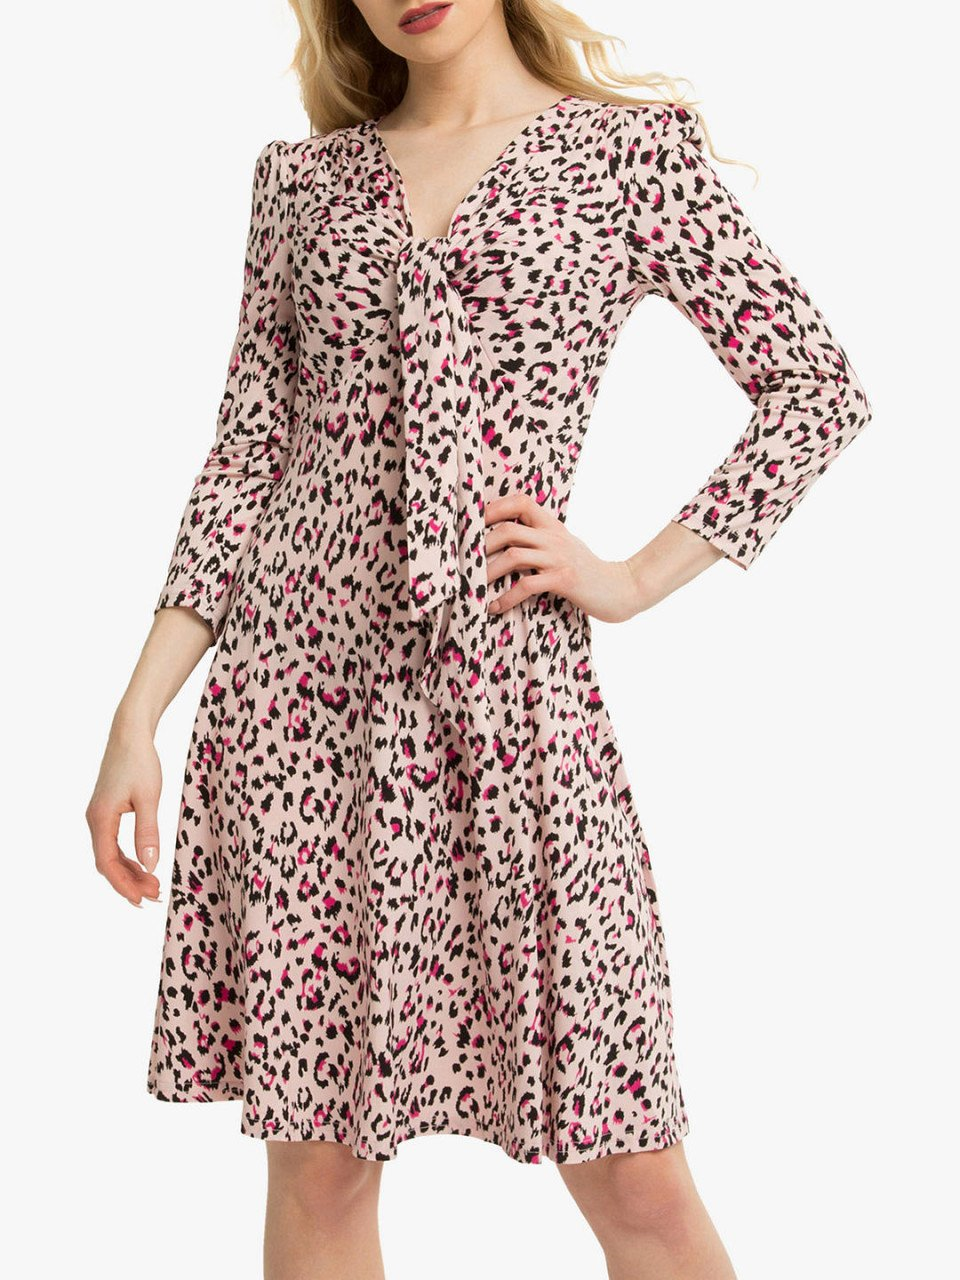 Jolie Moi Tie Front Animal Print Dress, Pink/Multi